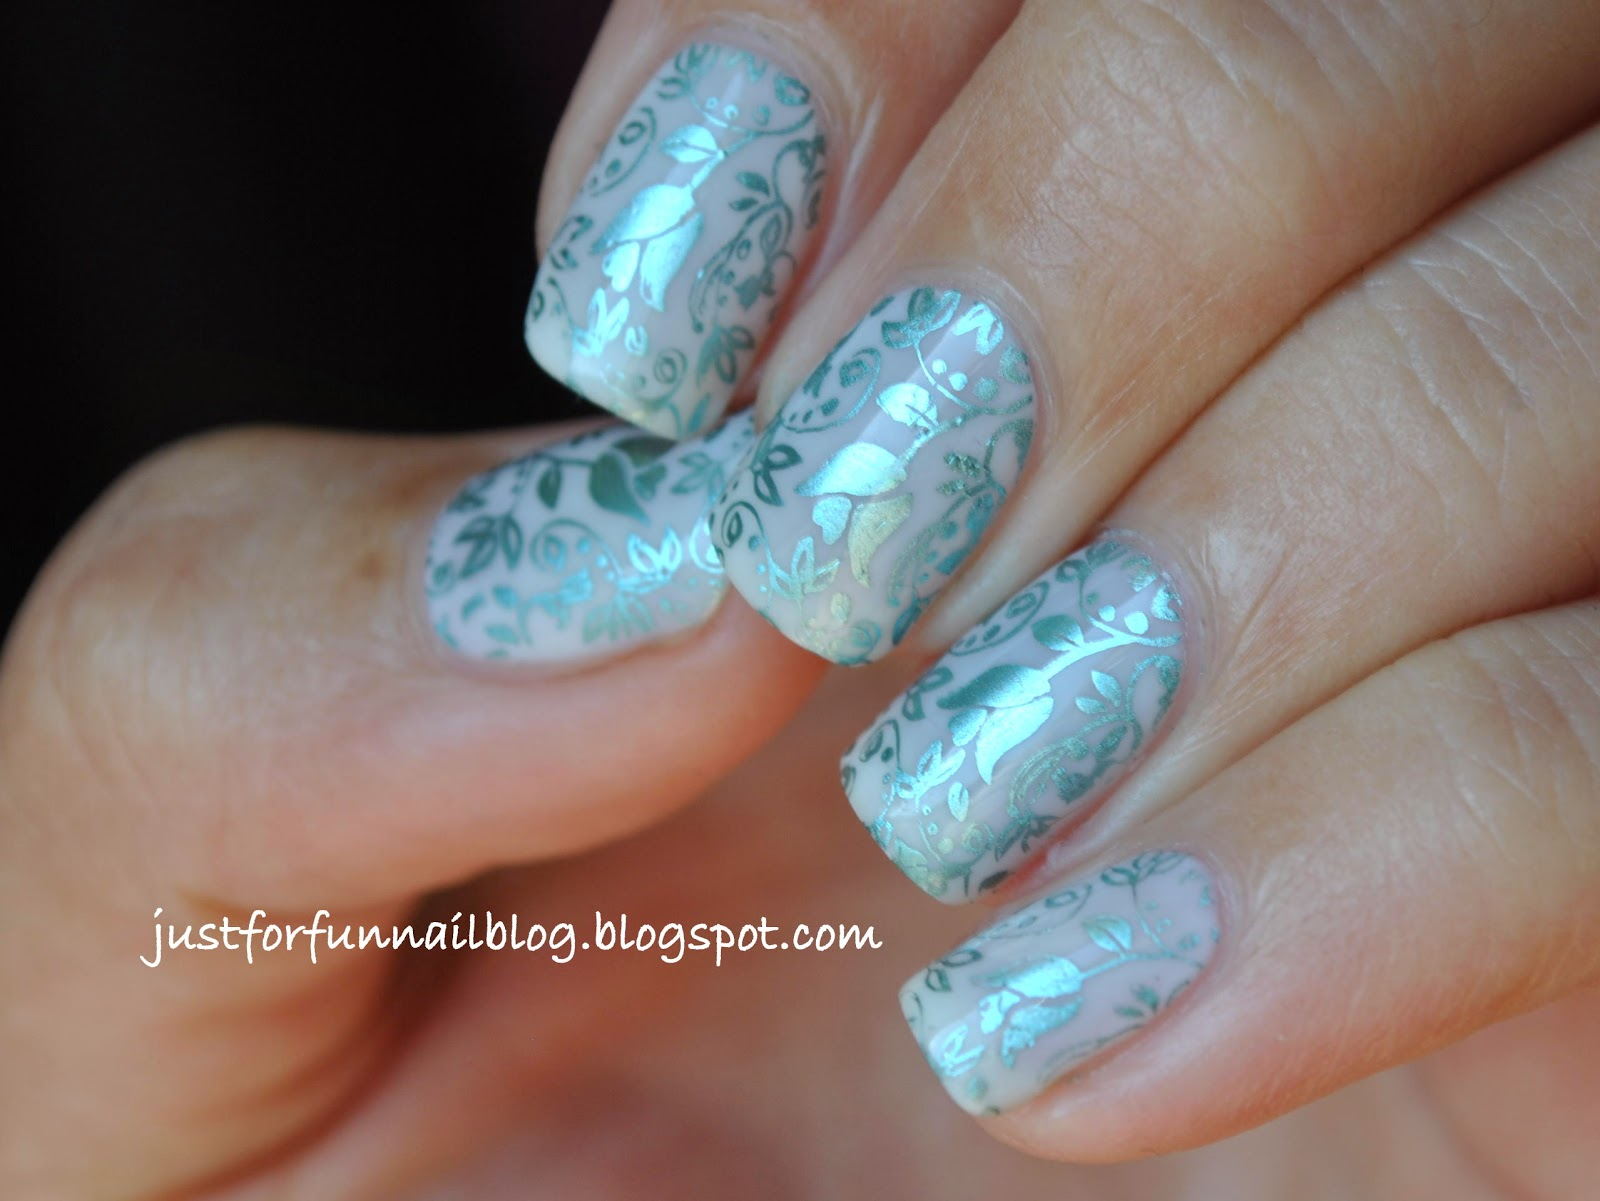 Turquoise flower stamping over white delicate base